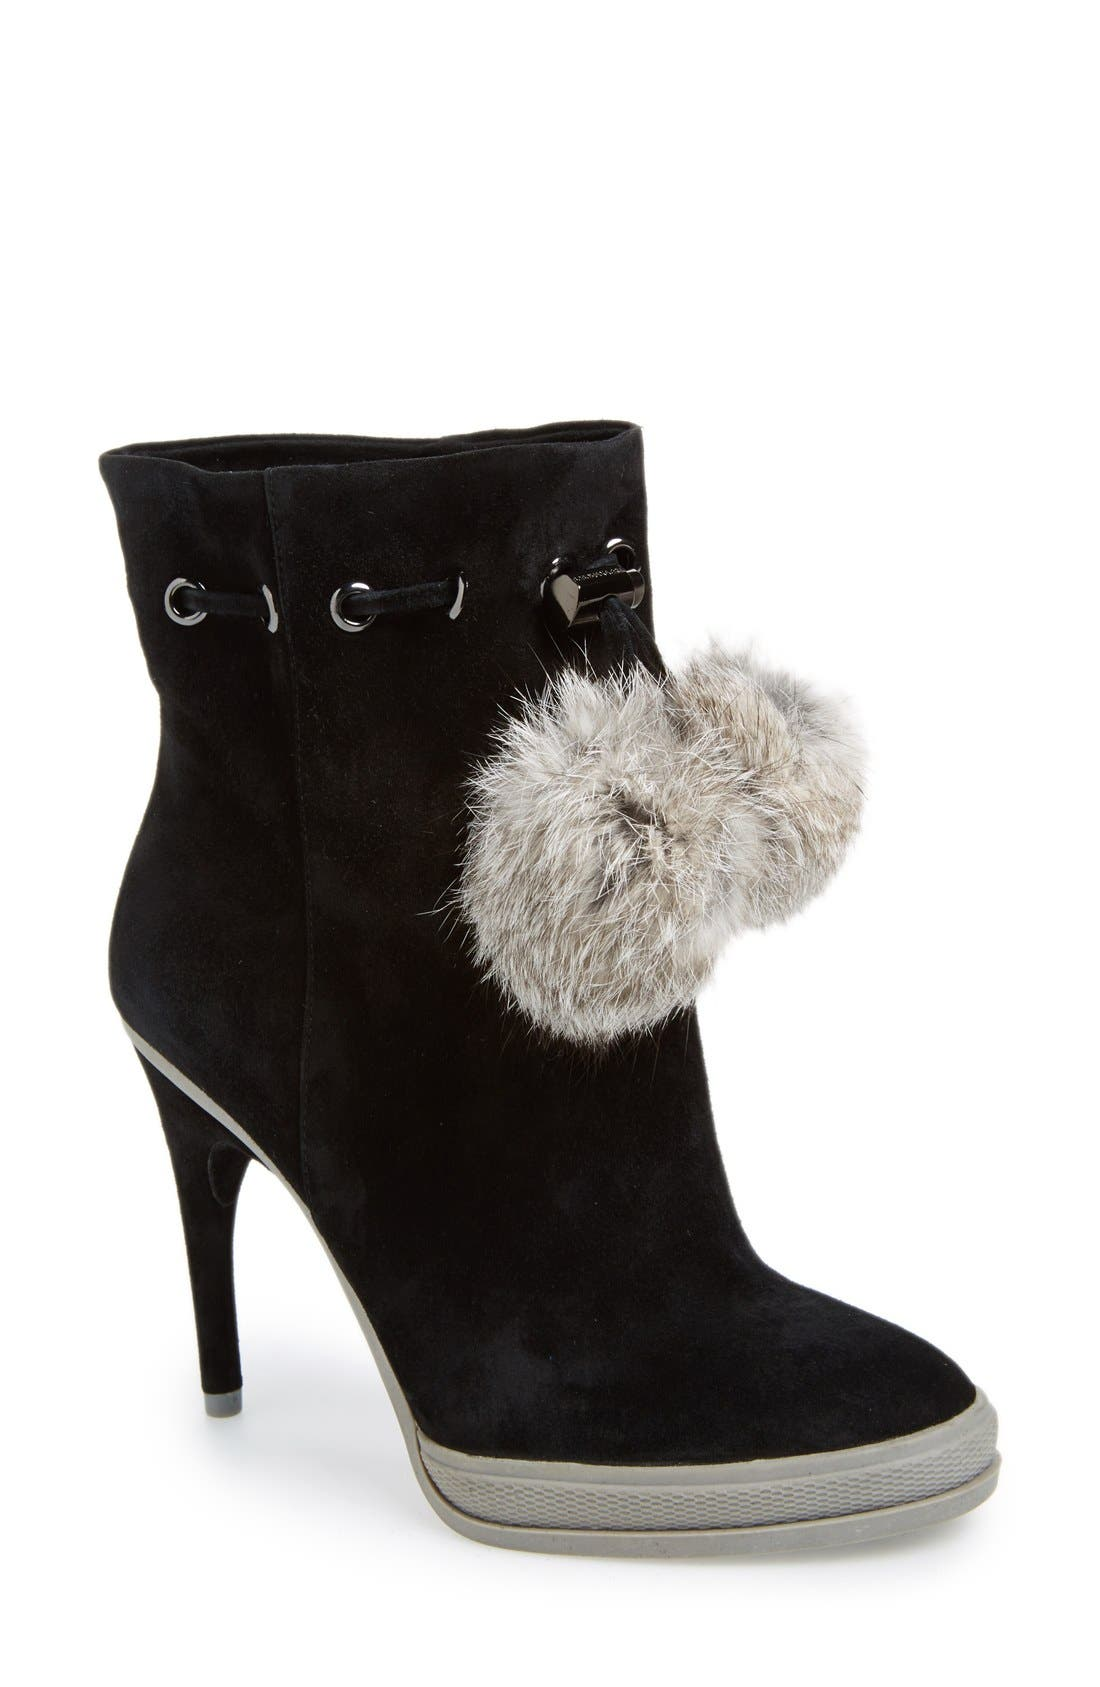 Main Image - BCBGMAXAZRIA 'Perry' Ankle Bootie (Women)